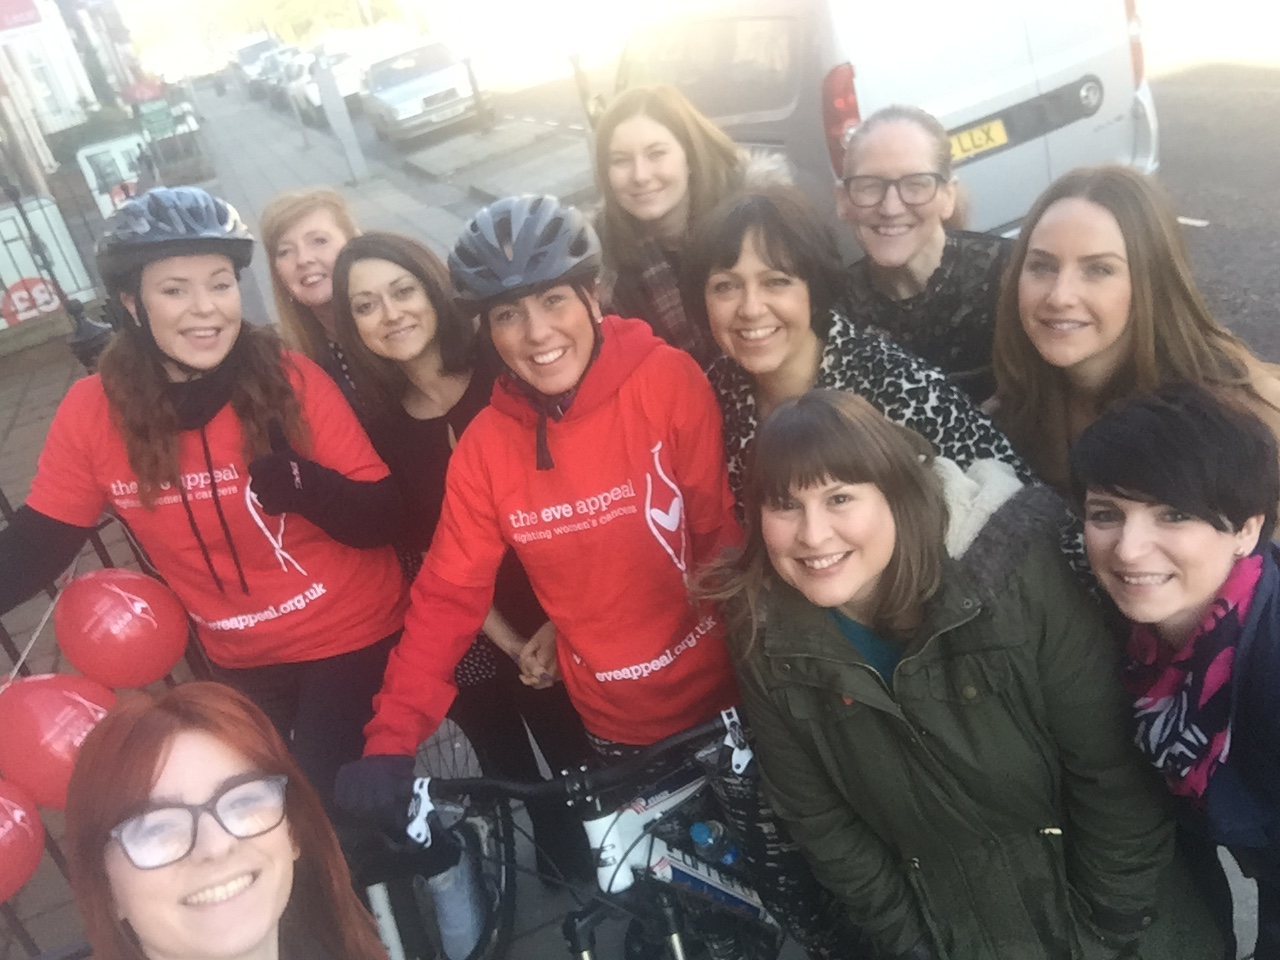 Saks cyclists for The Eve Appeal